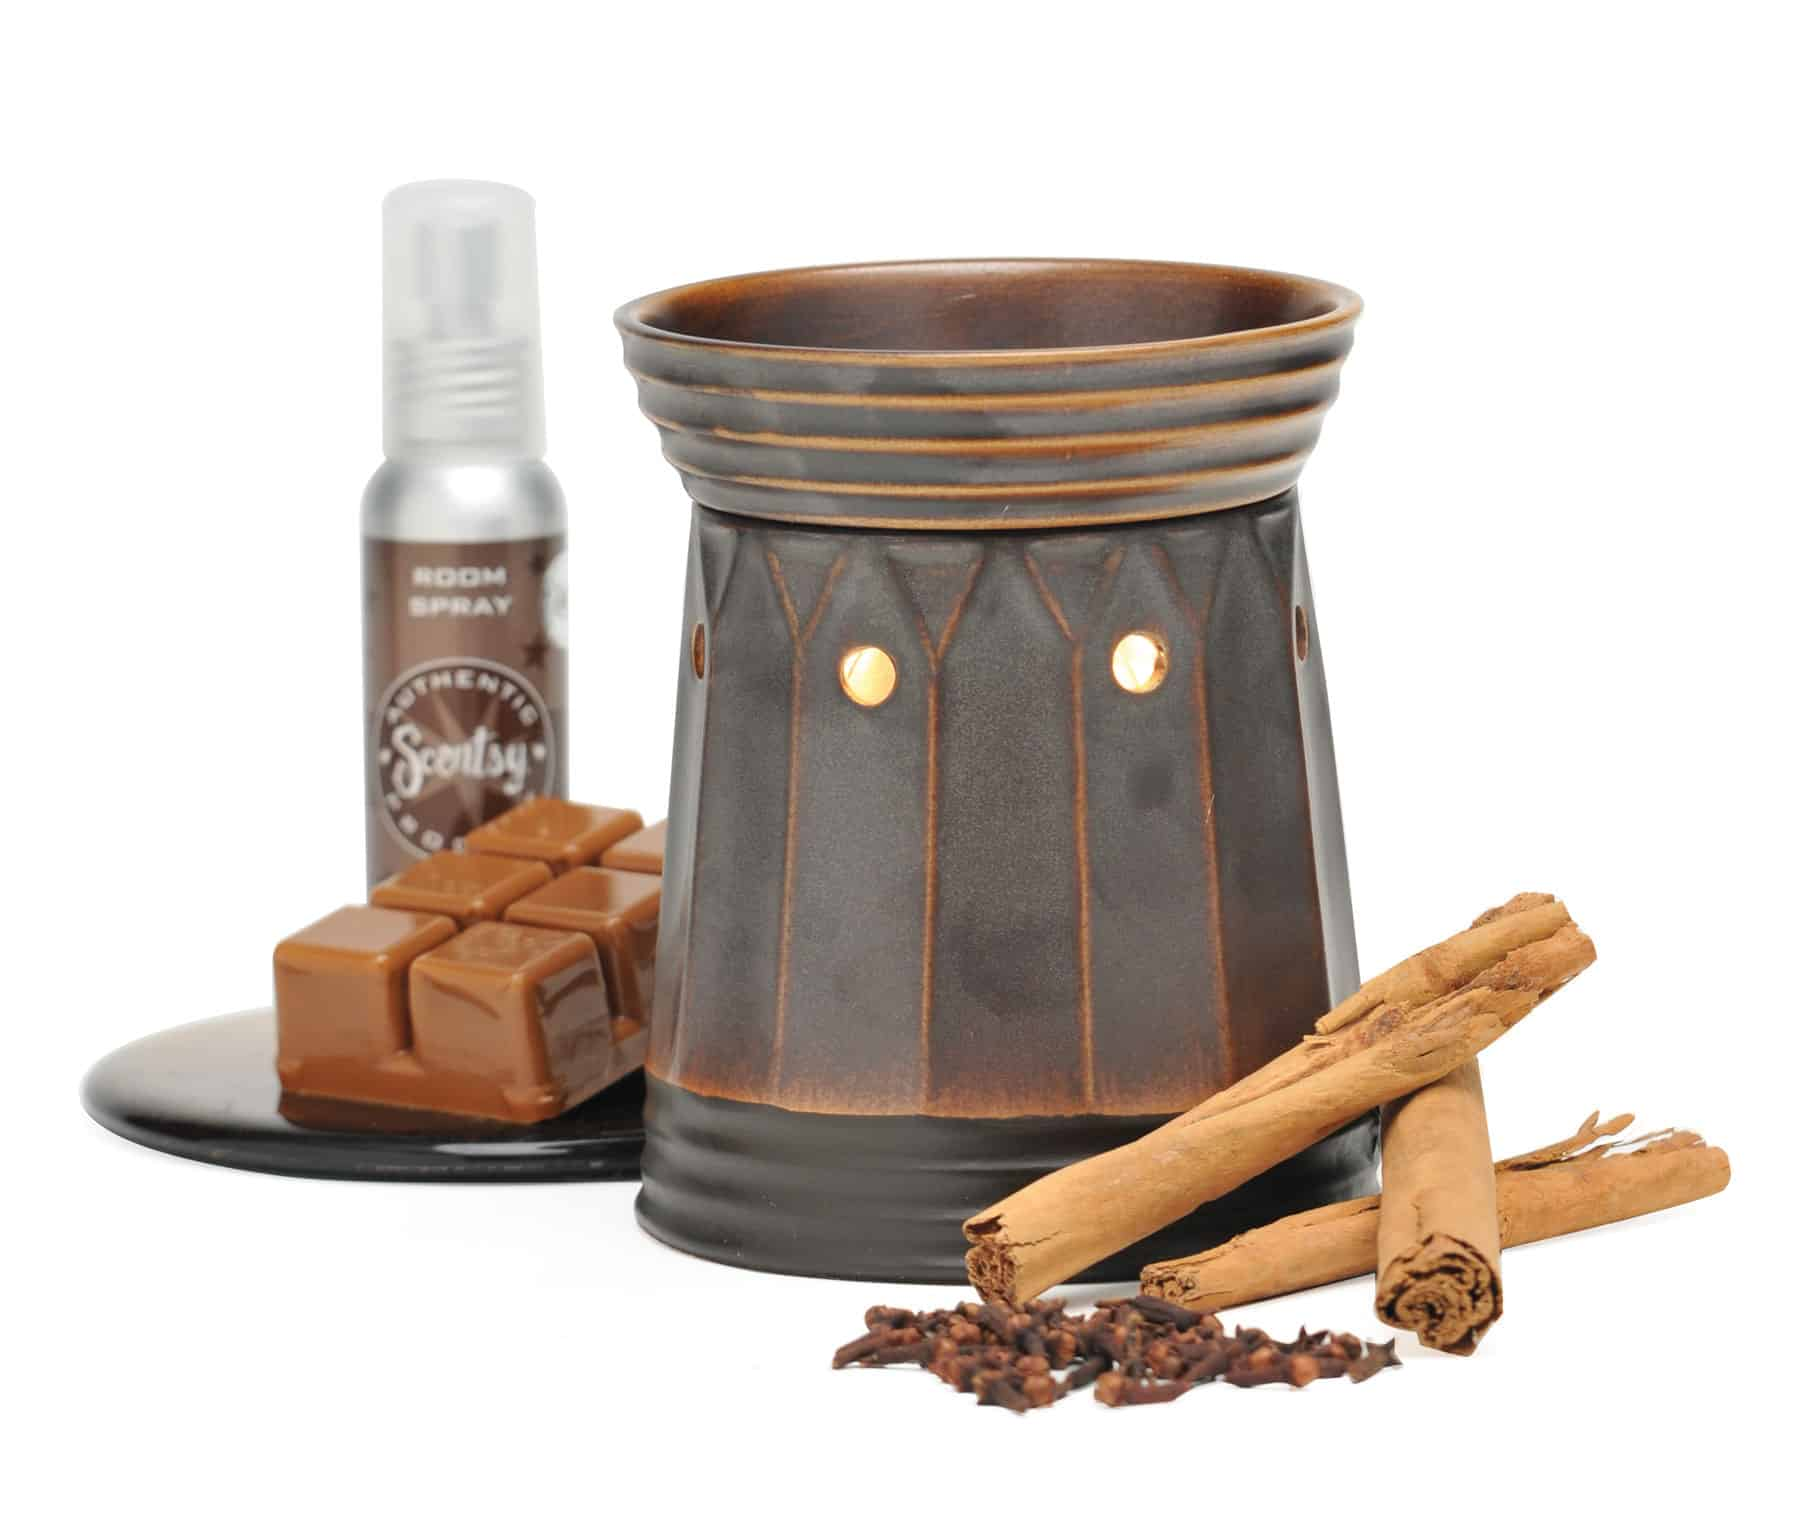 August Sale At Scentsy Wickless Candles